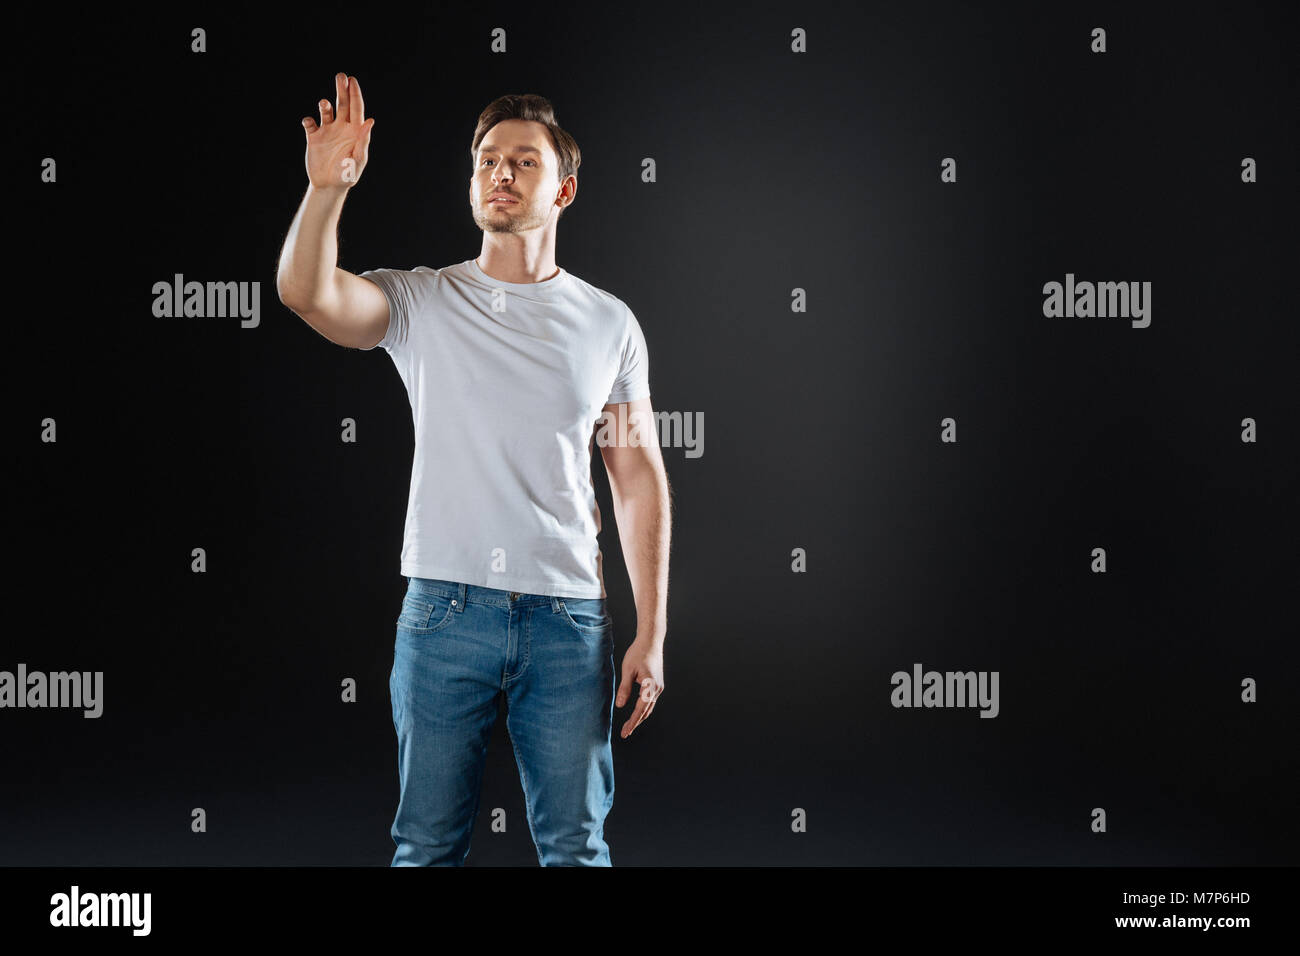 Handsome stylish man lifting hand and looking aside. - Stock Image